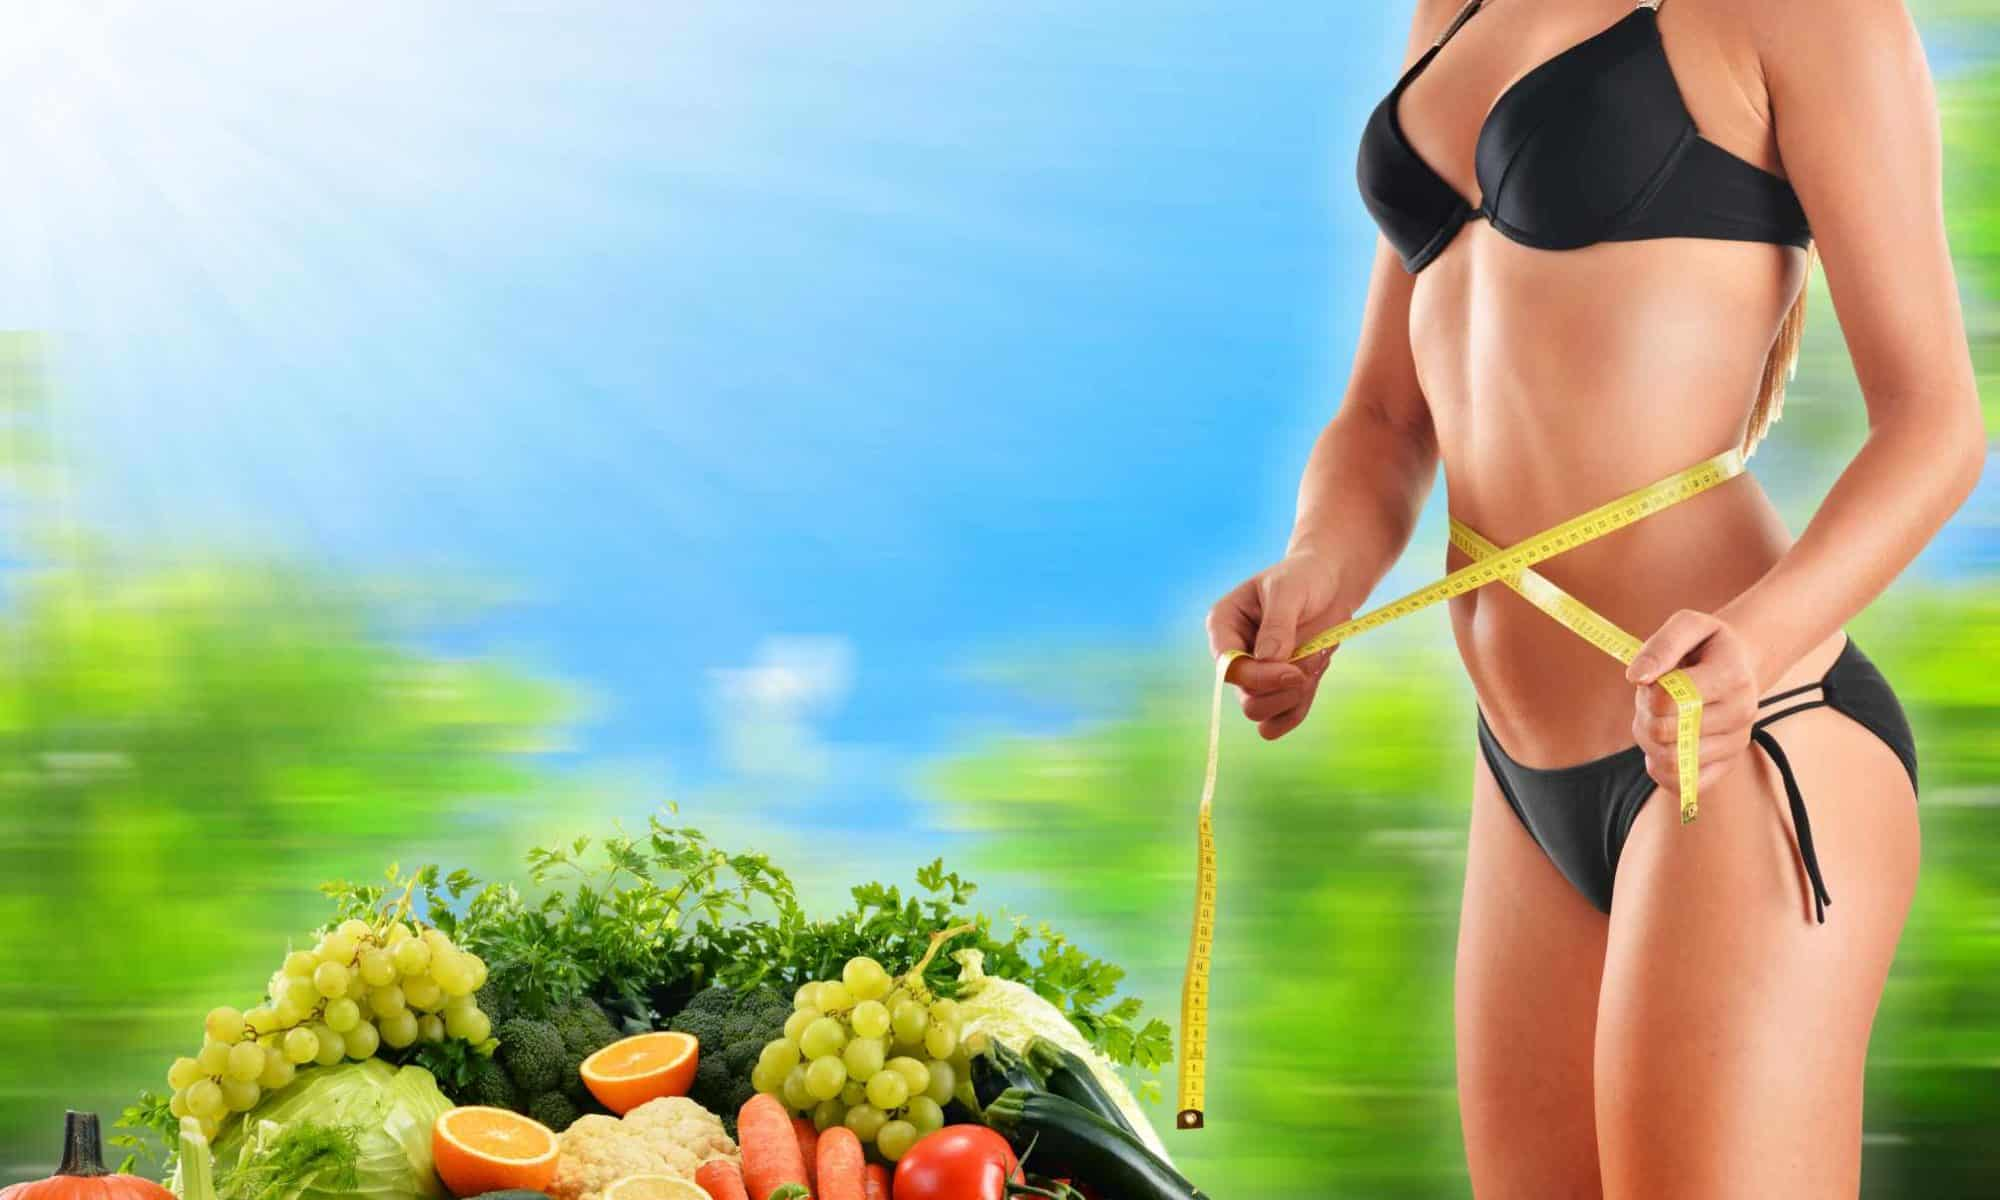 Medical and Prescription weight-loss based on metabolic health in Tampa Bay near USF